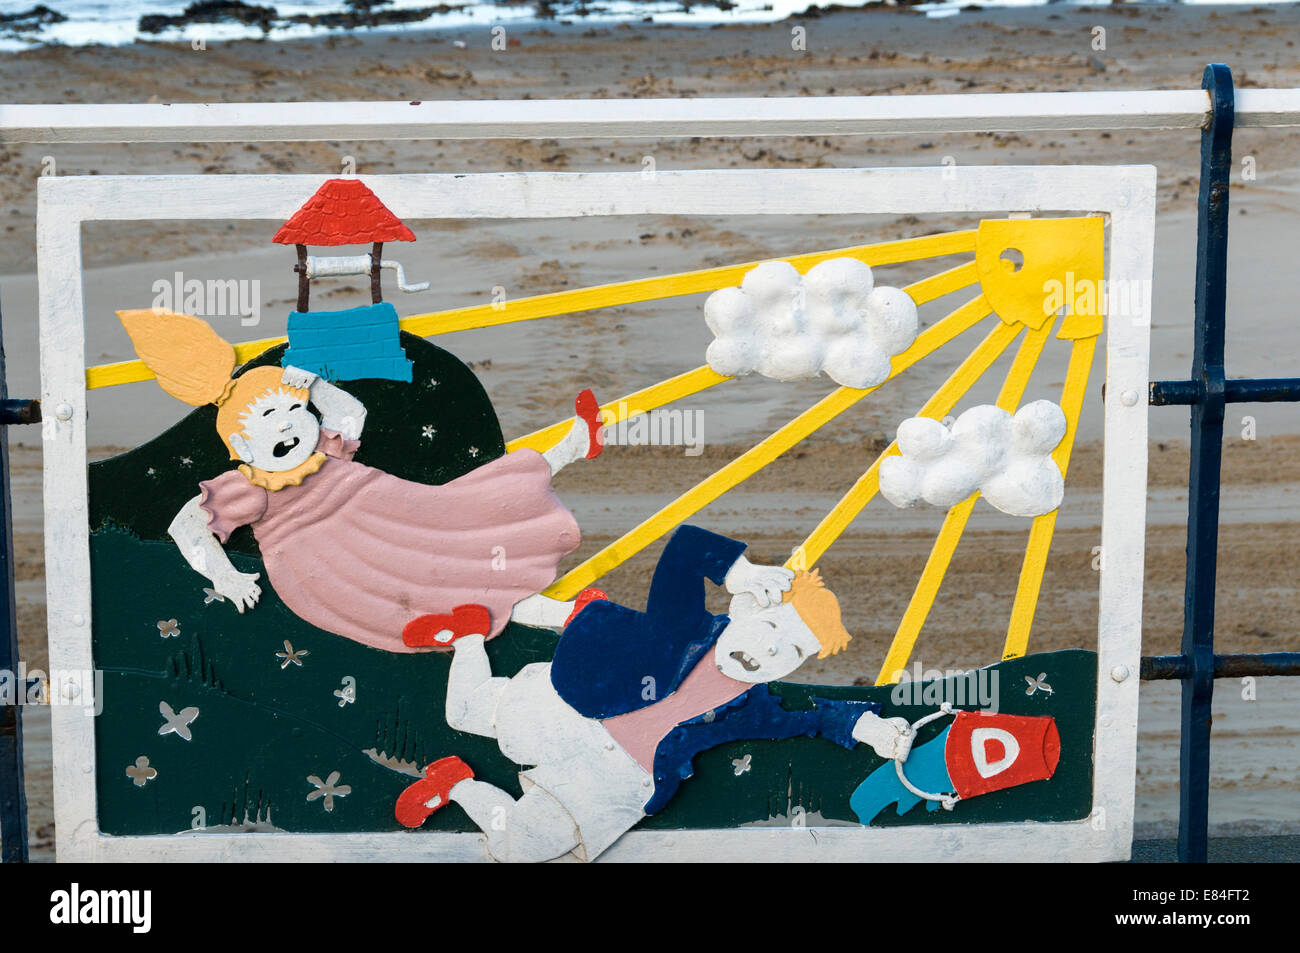 Decorative panel on the esplanade at Redcar depicting the nursery rhyme Jack and Jill - Stock Image